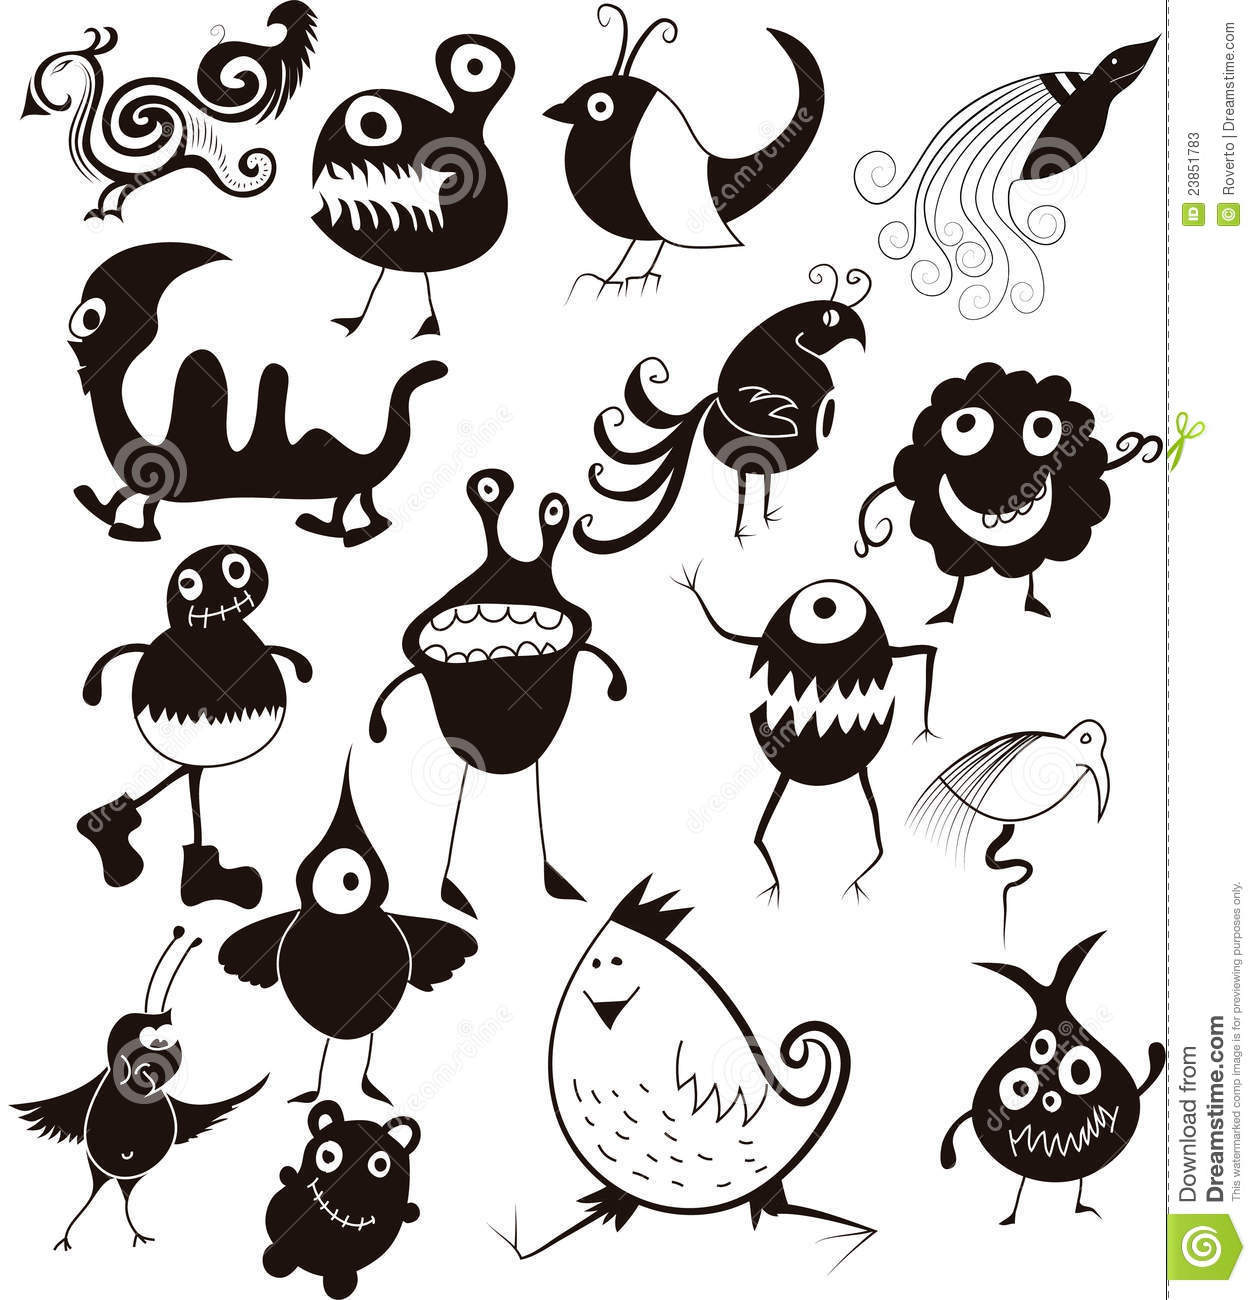 Many cute doodle characters stock vector image 23851783 for Doodle characters